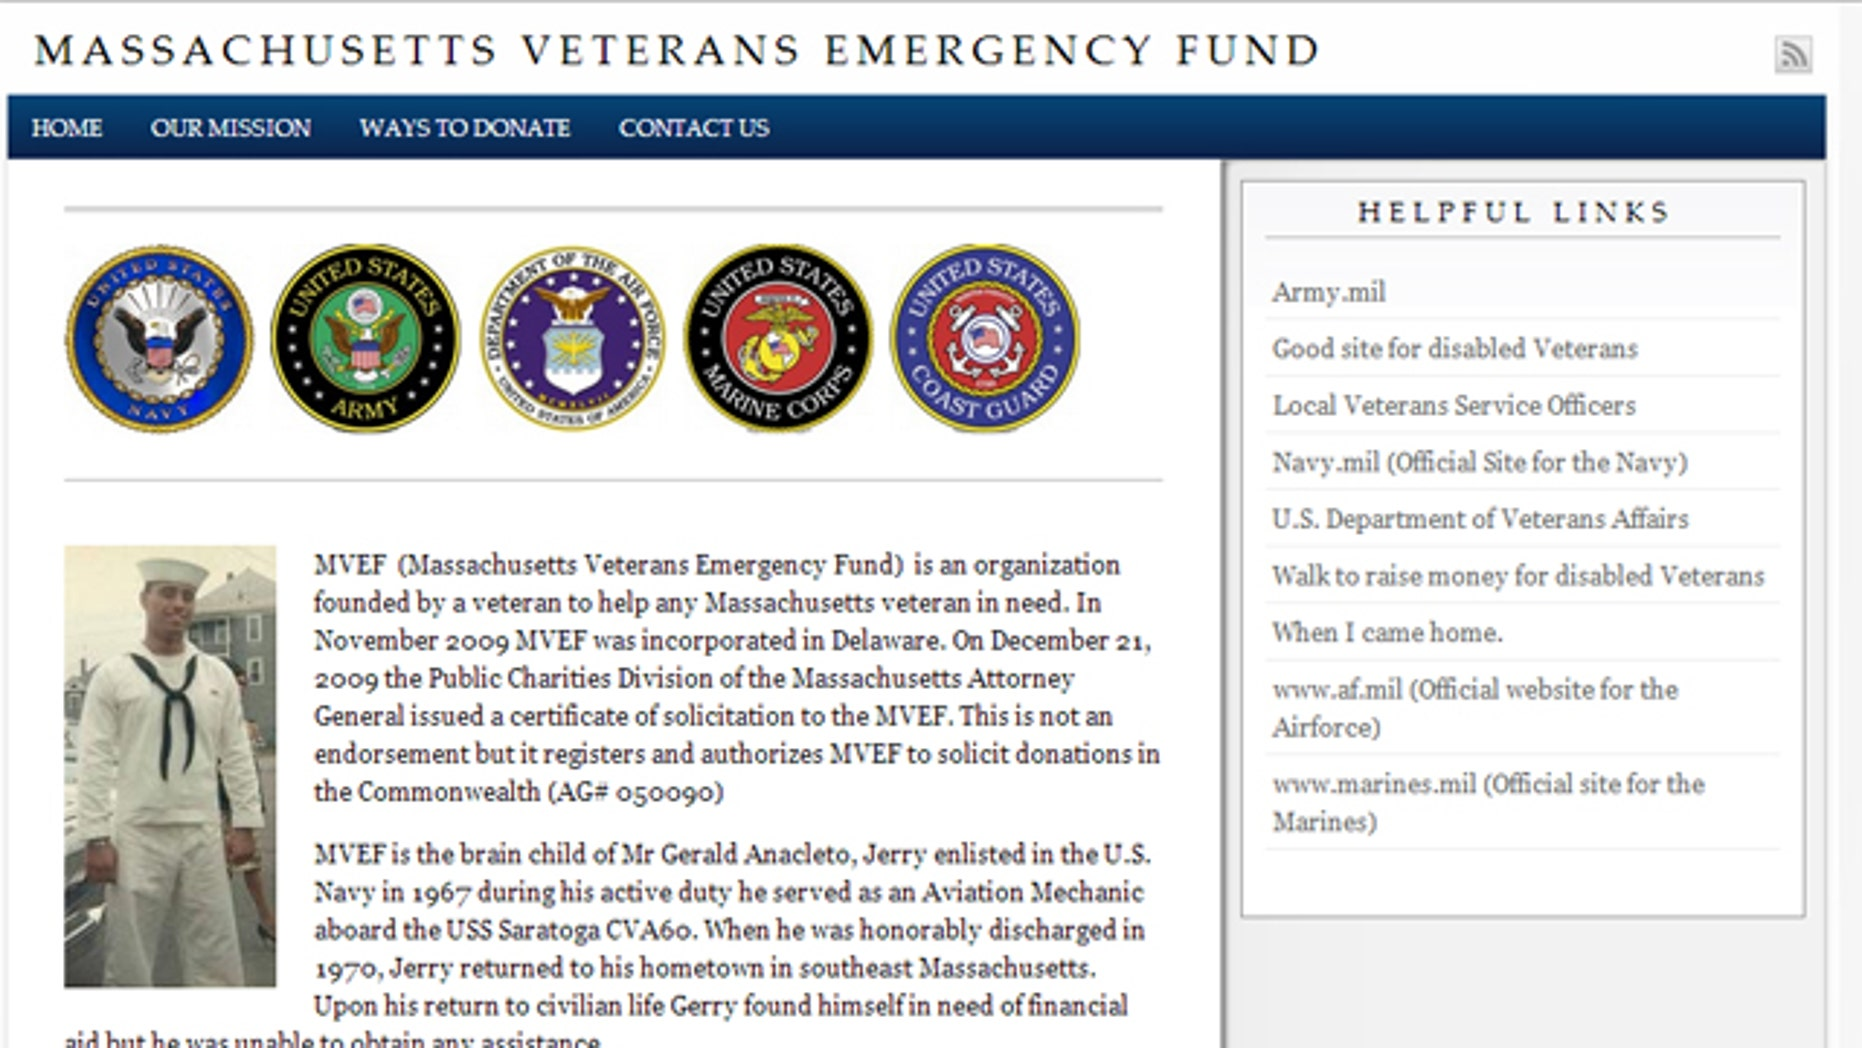 The Massachusetts Veterans Emergency Fund, founded by Gerald Anacleto, received $40,257 -- a small percentage of the $151,736 in 2010 donations and the $317,461 it received in 2011, according to official public filings, WCVB.com reports.